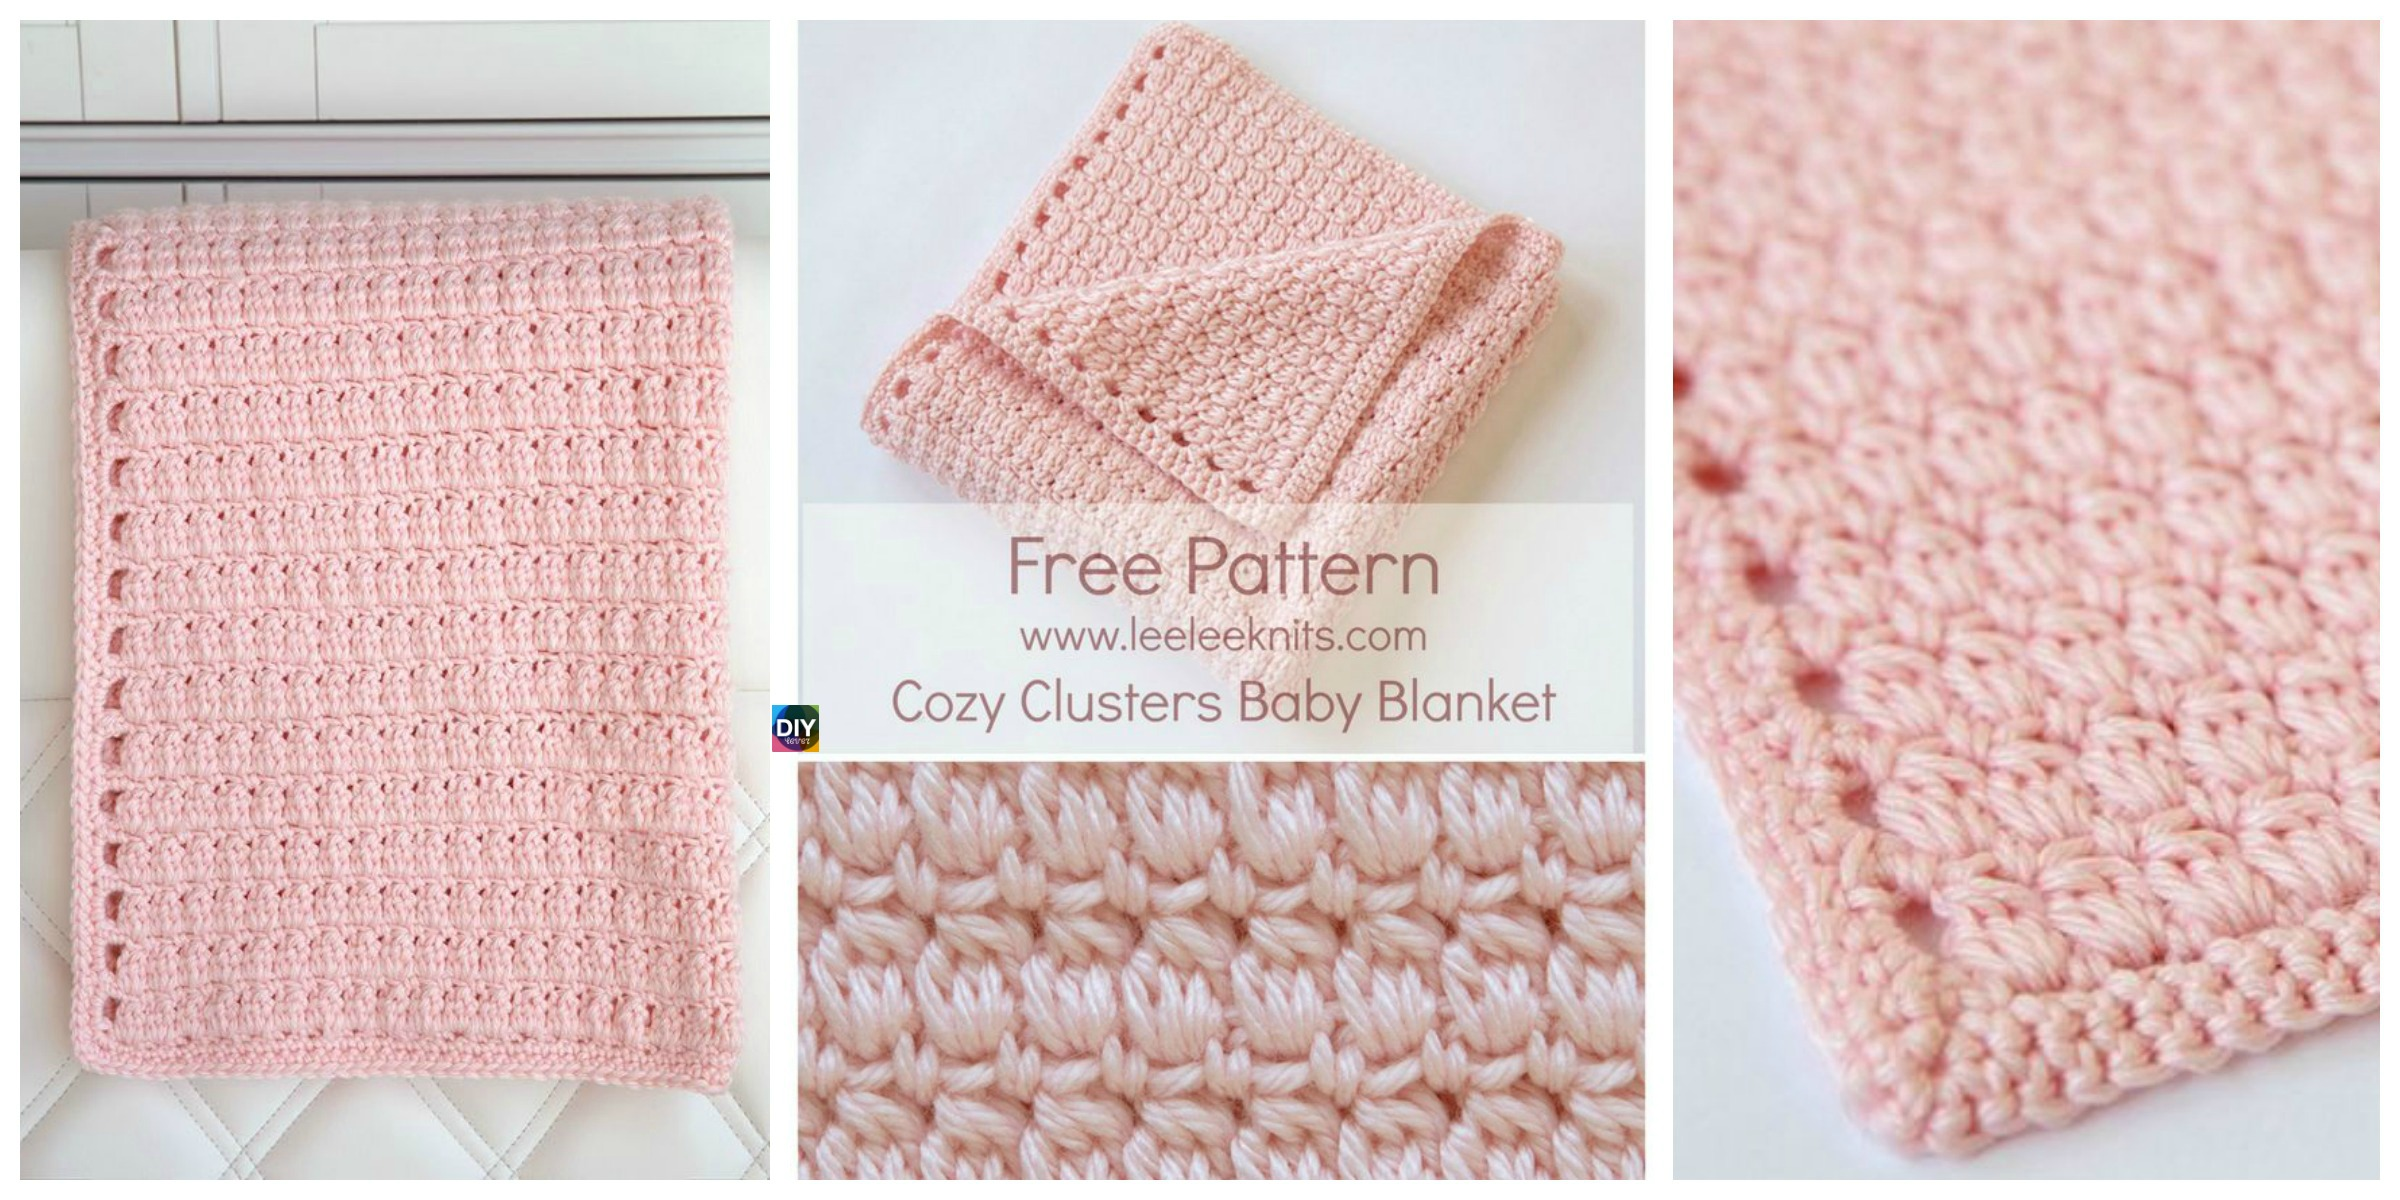 Cozy Clusters Crochet Baby Blanket - Free Pattern - DIY 4 EVER